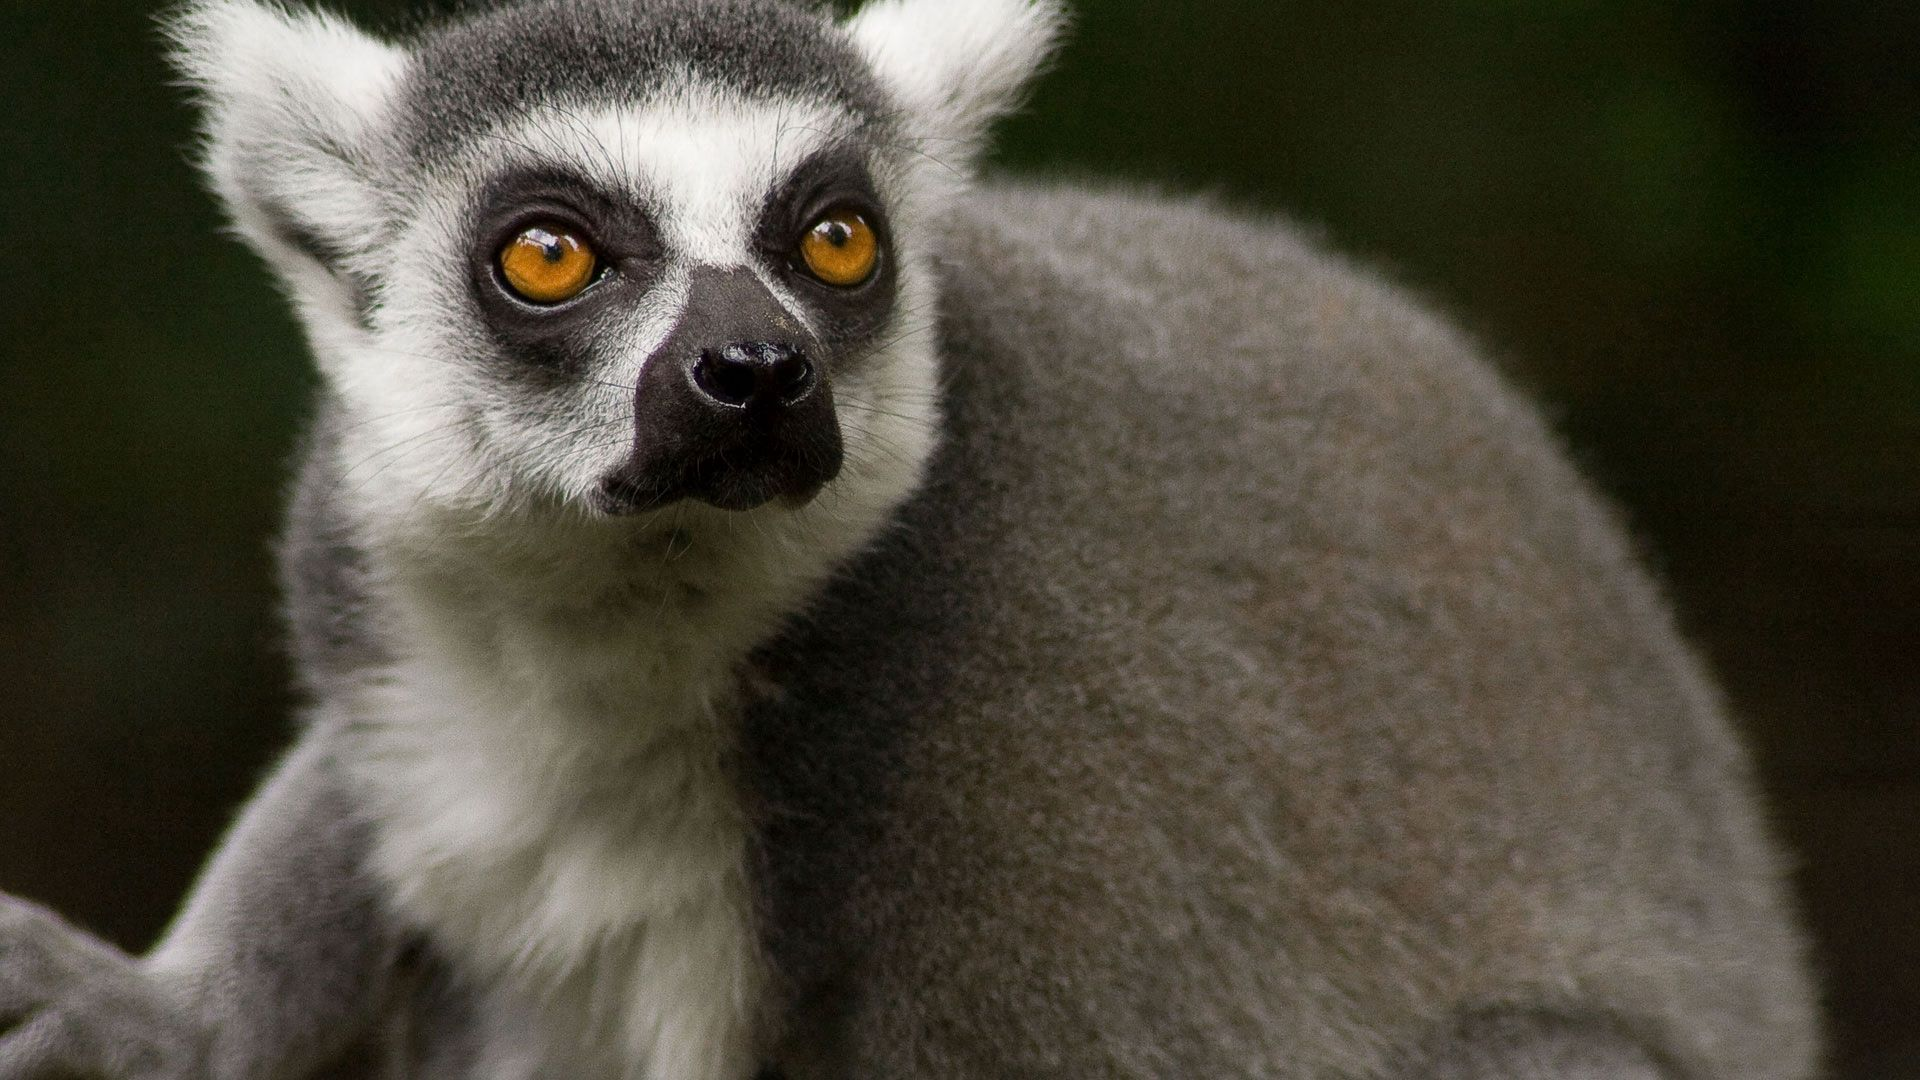 150017 download wallpaper Animals, Lemur, Muzzle, Wool, Nose, Eyes screensavers and pictures for free